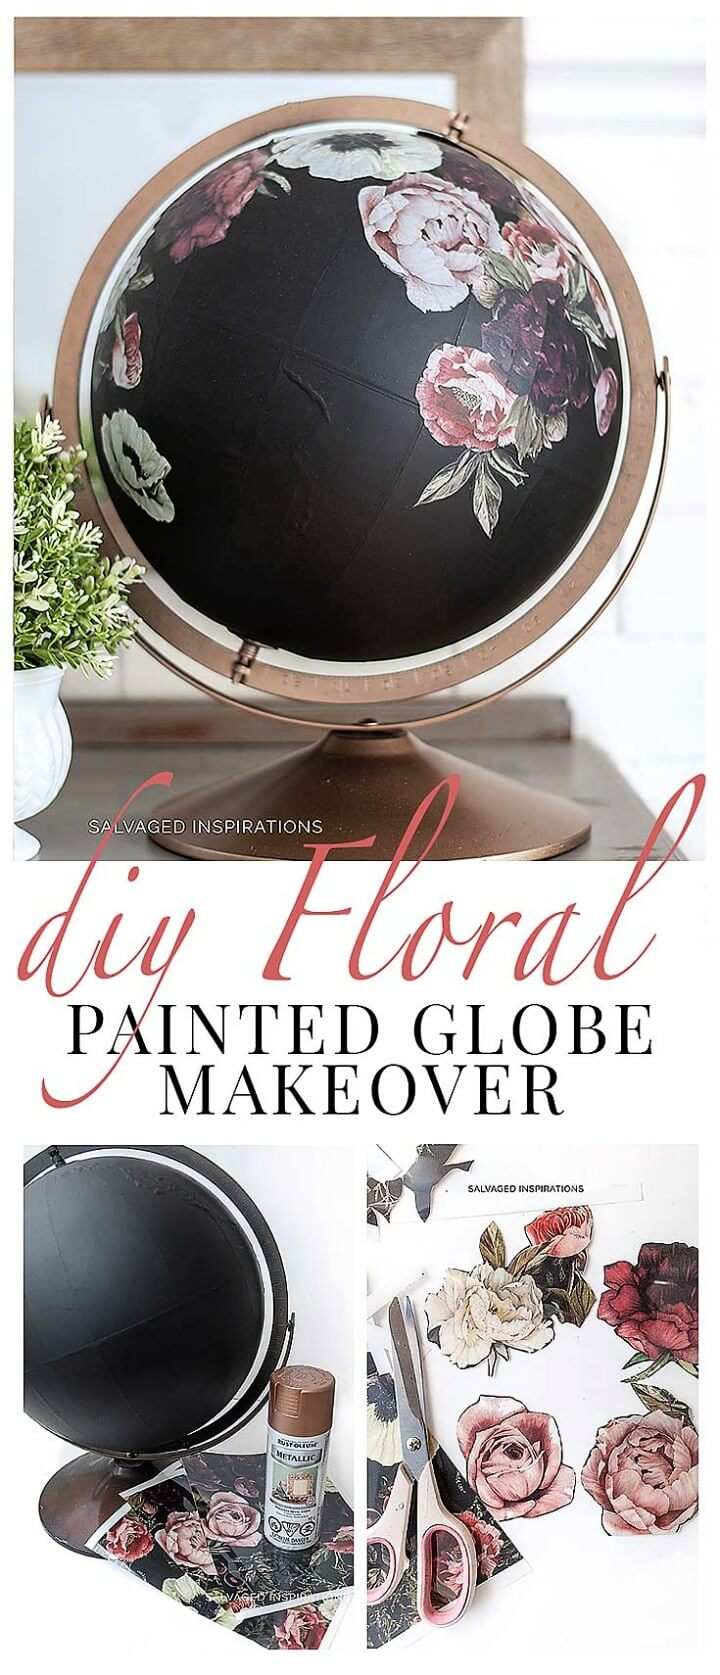 DIY Painted Globe & Furniture Transfers